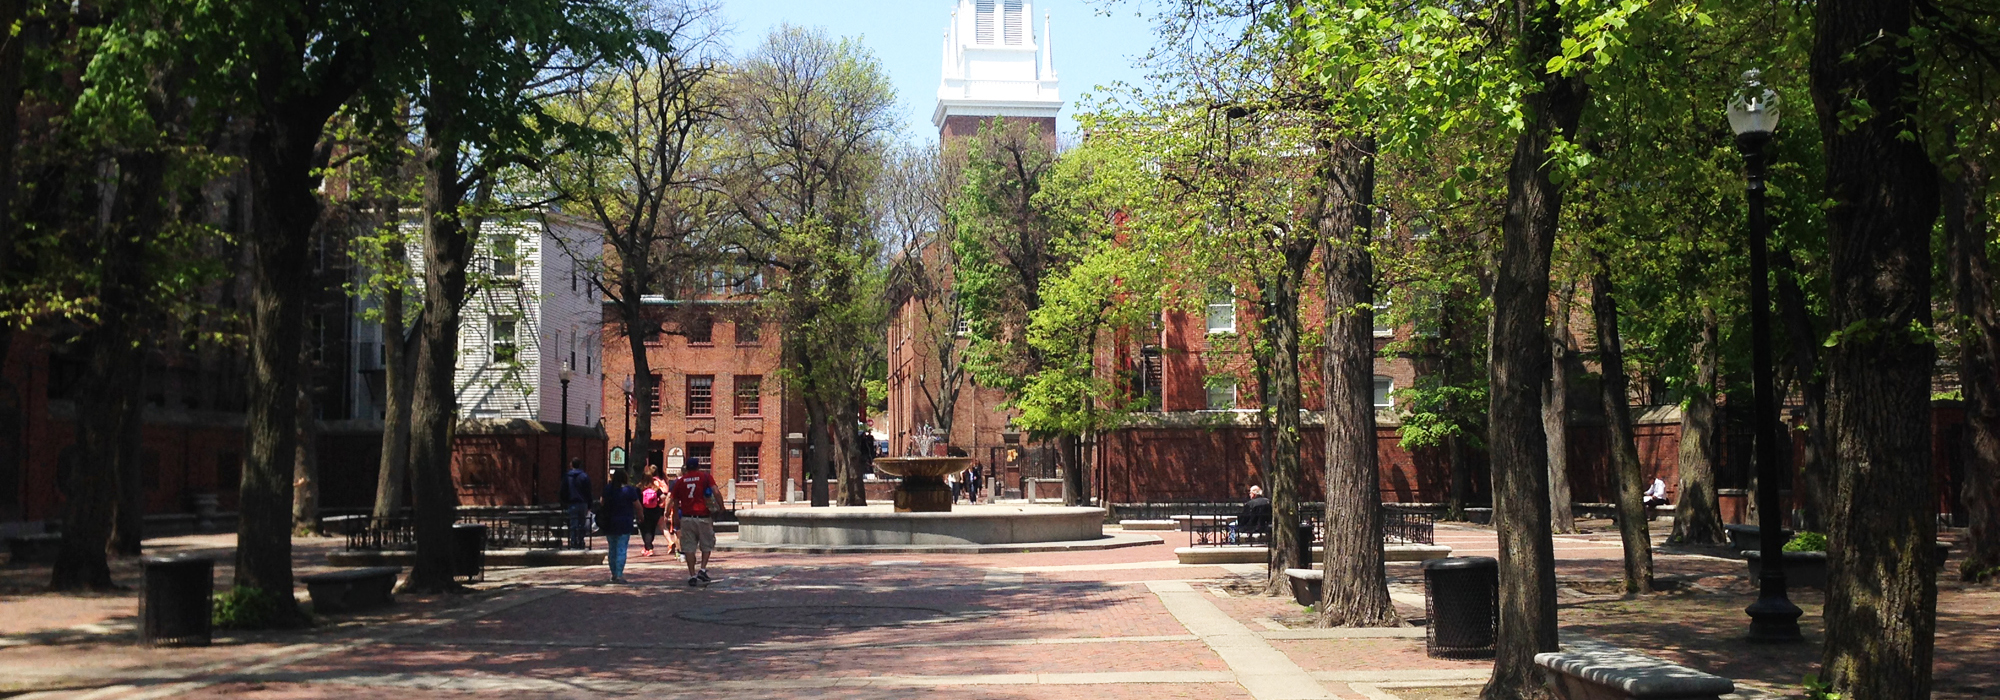 Image for a photo of paul revere mall in central boston